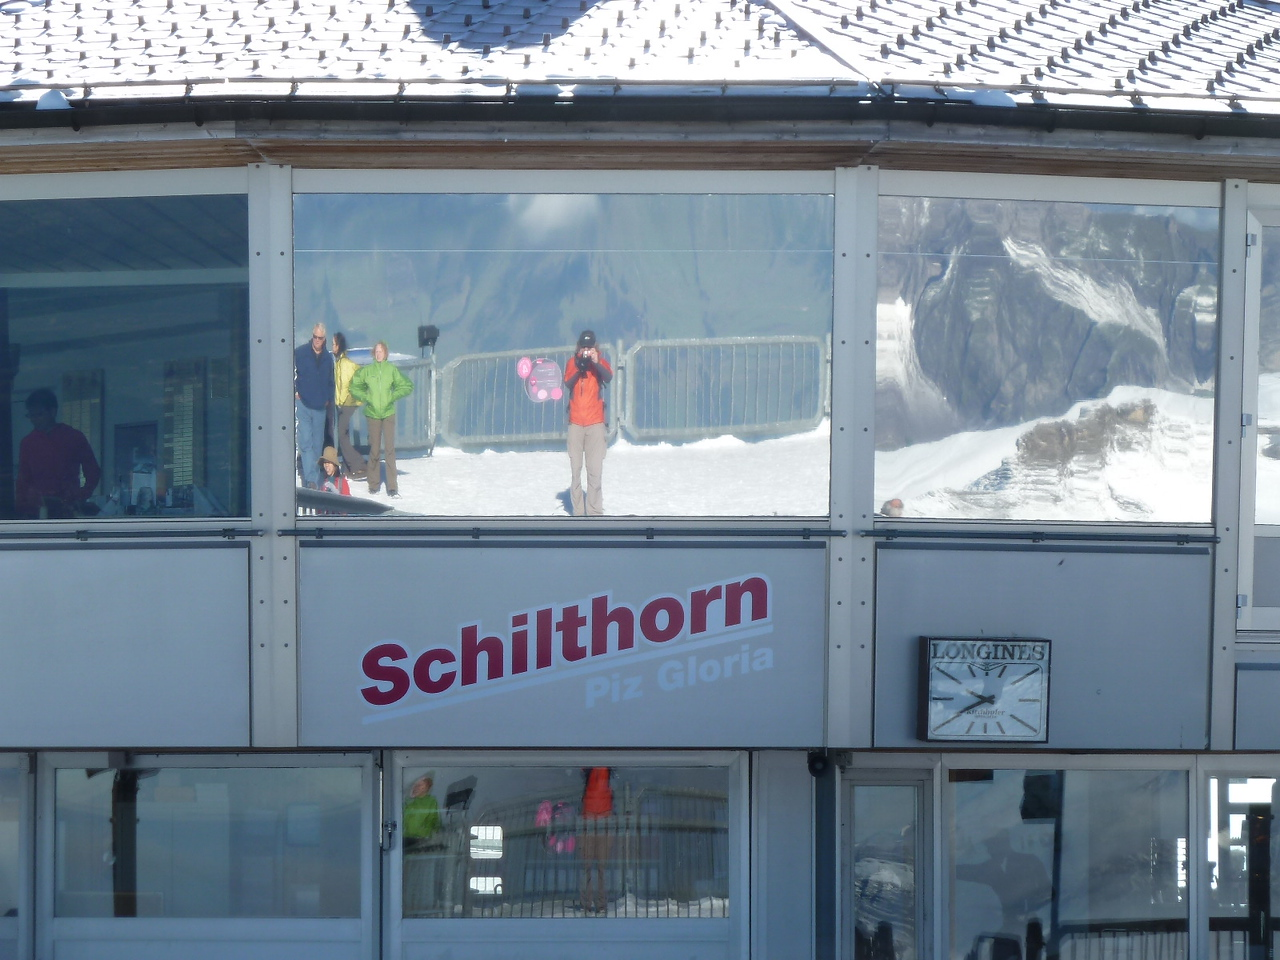 After 5 rainy, cloudy days, we got one last chance to embrace these fabulous mountains! A series of gondola rides got us to the Schilthorn Mountaintop Station, made famous in the James Bond movie.